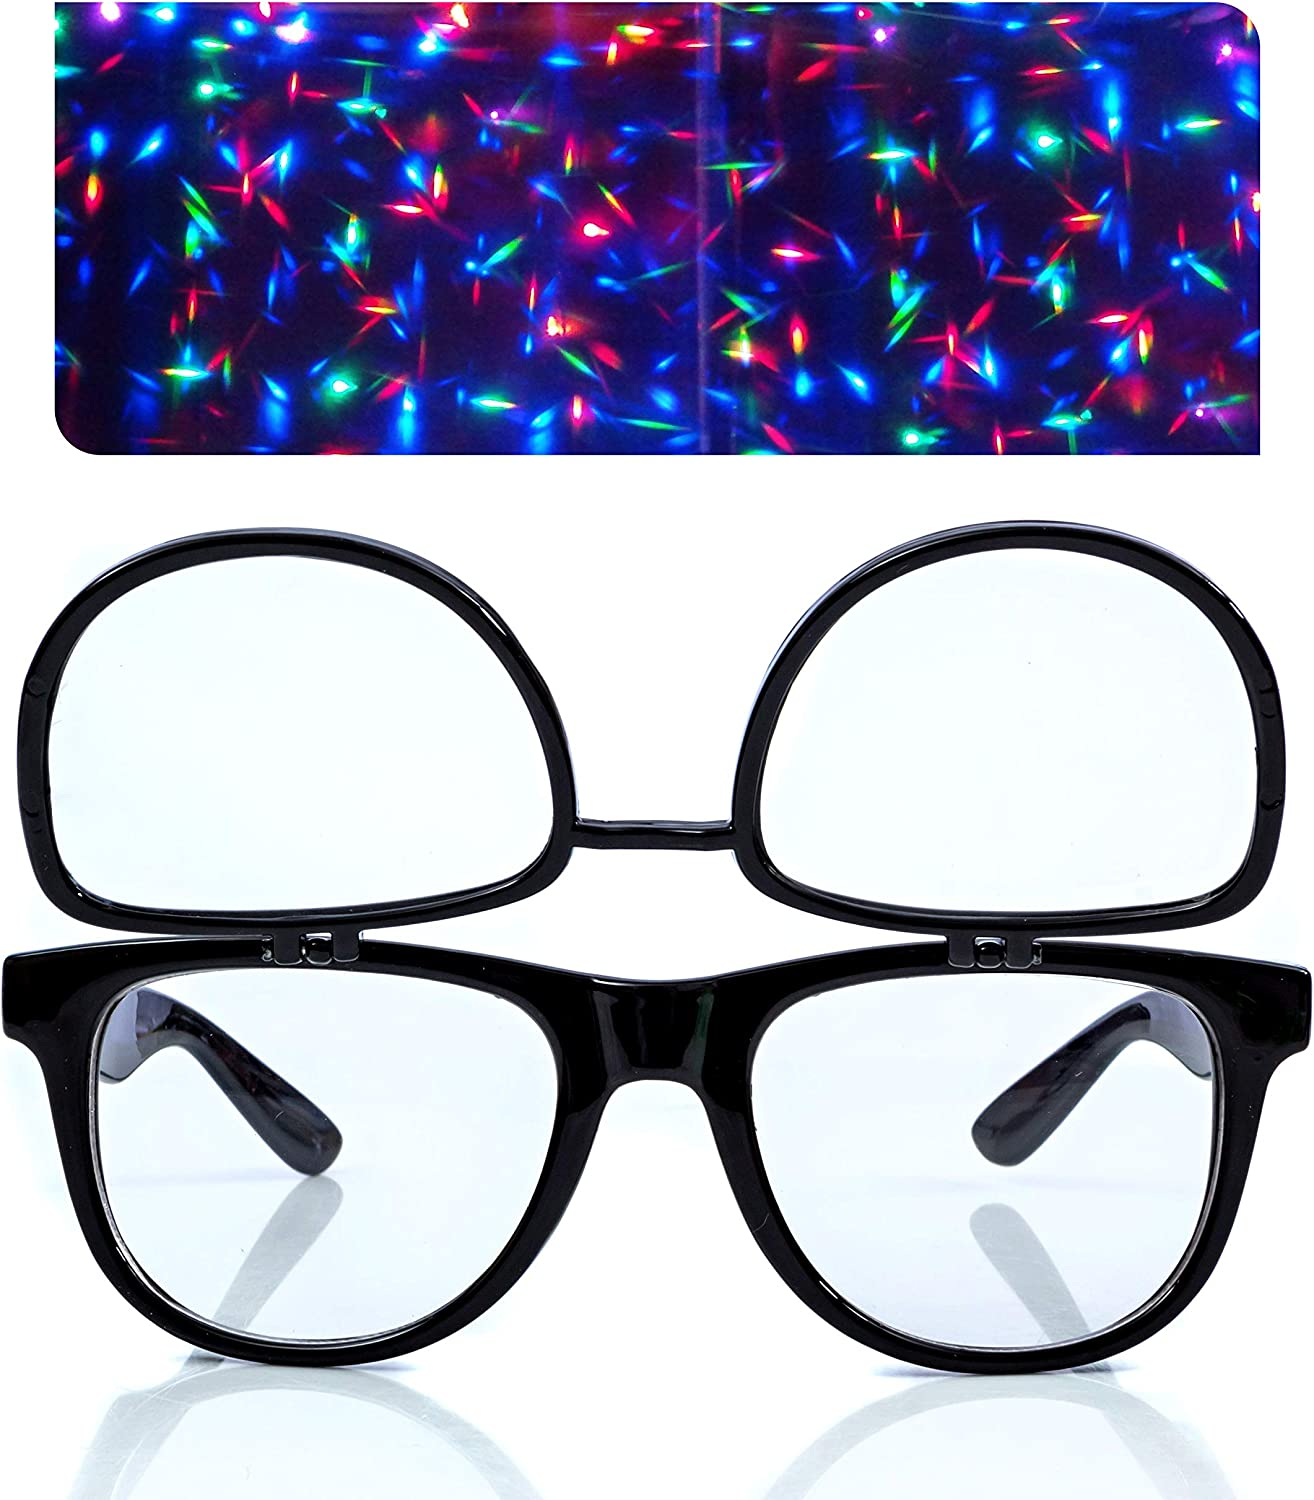 Luxury Premium Clear Glasses with Diffraction Flip for Tulsa Mall F - Ideal Lenses